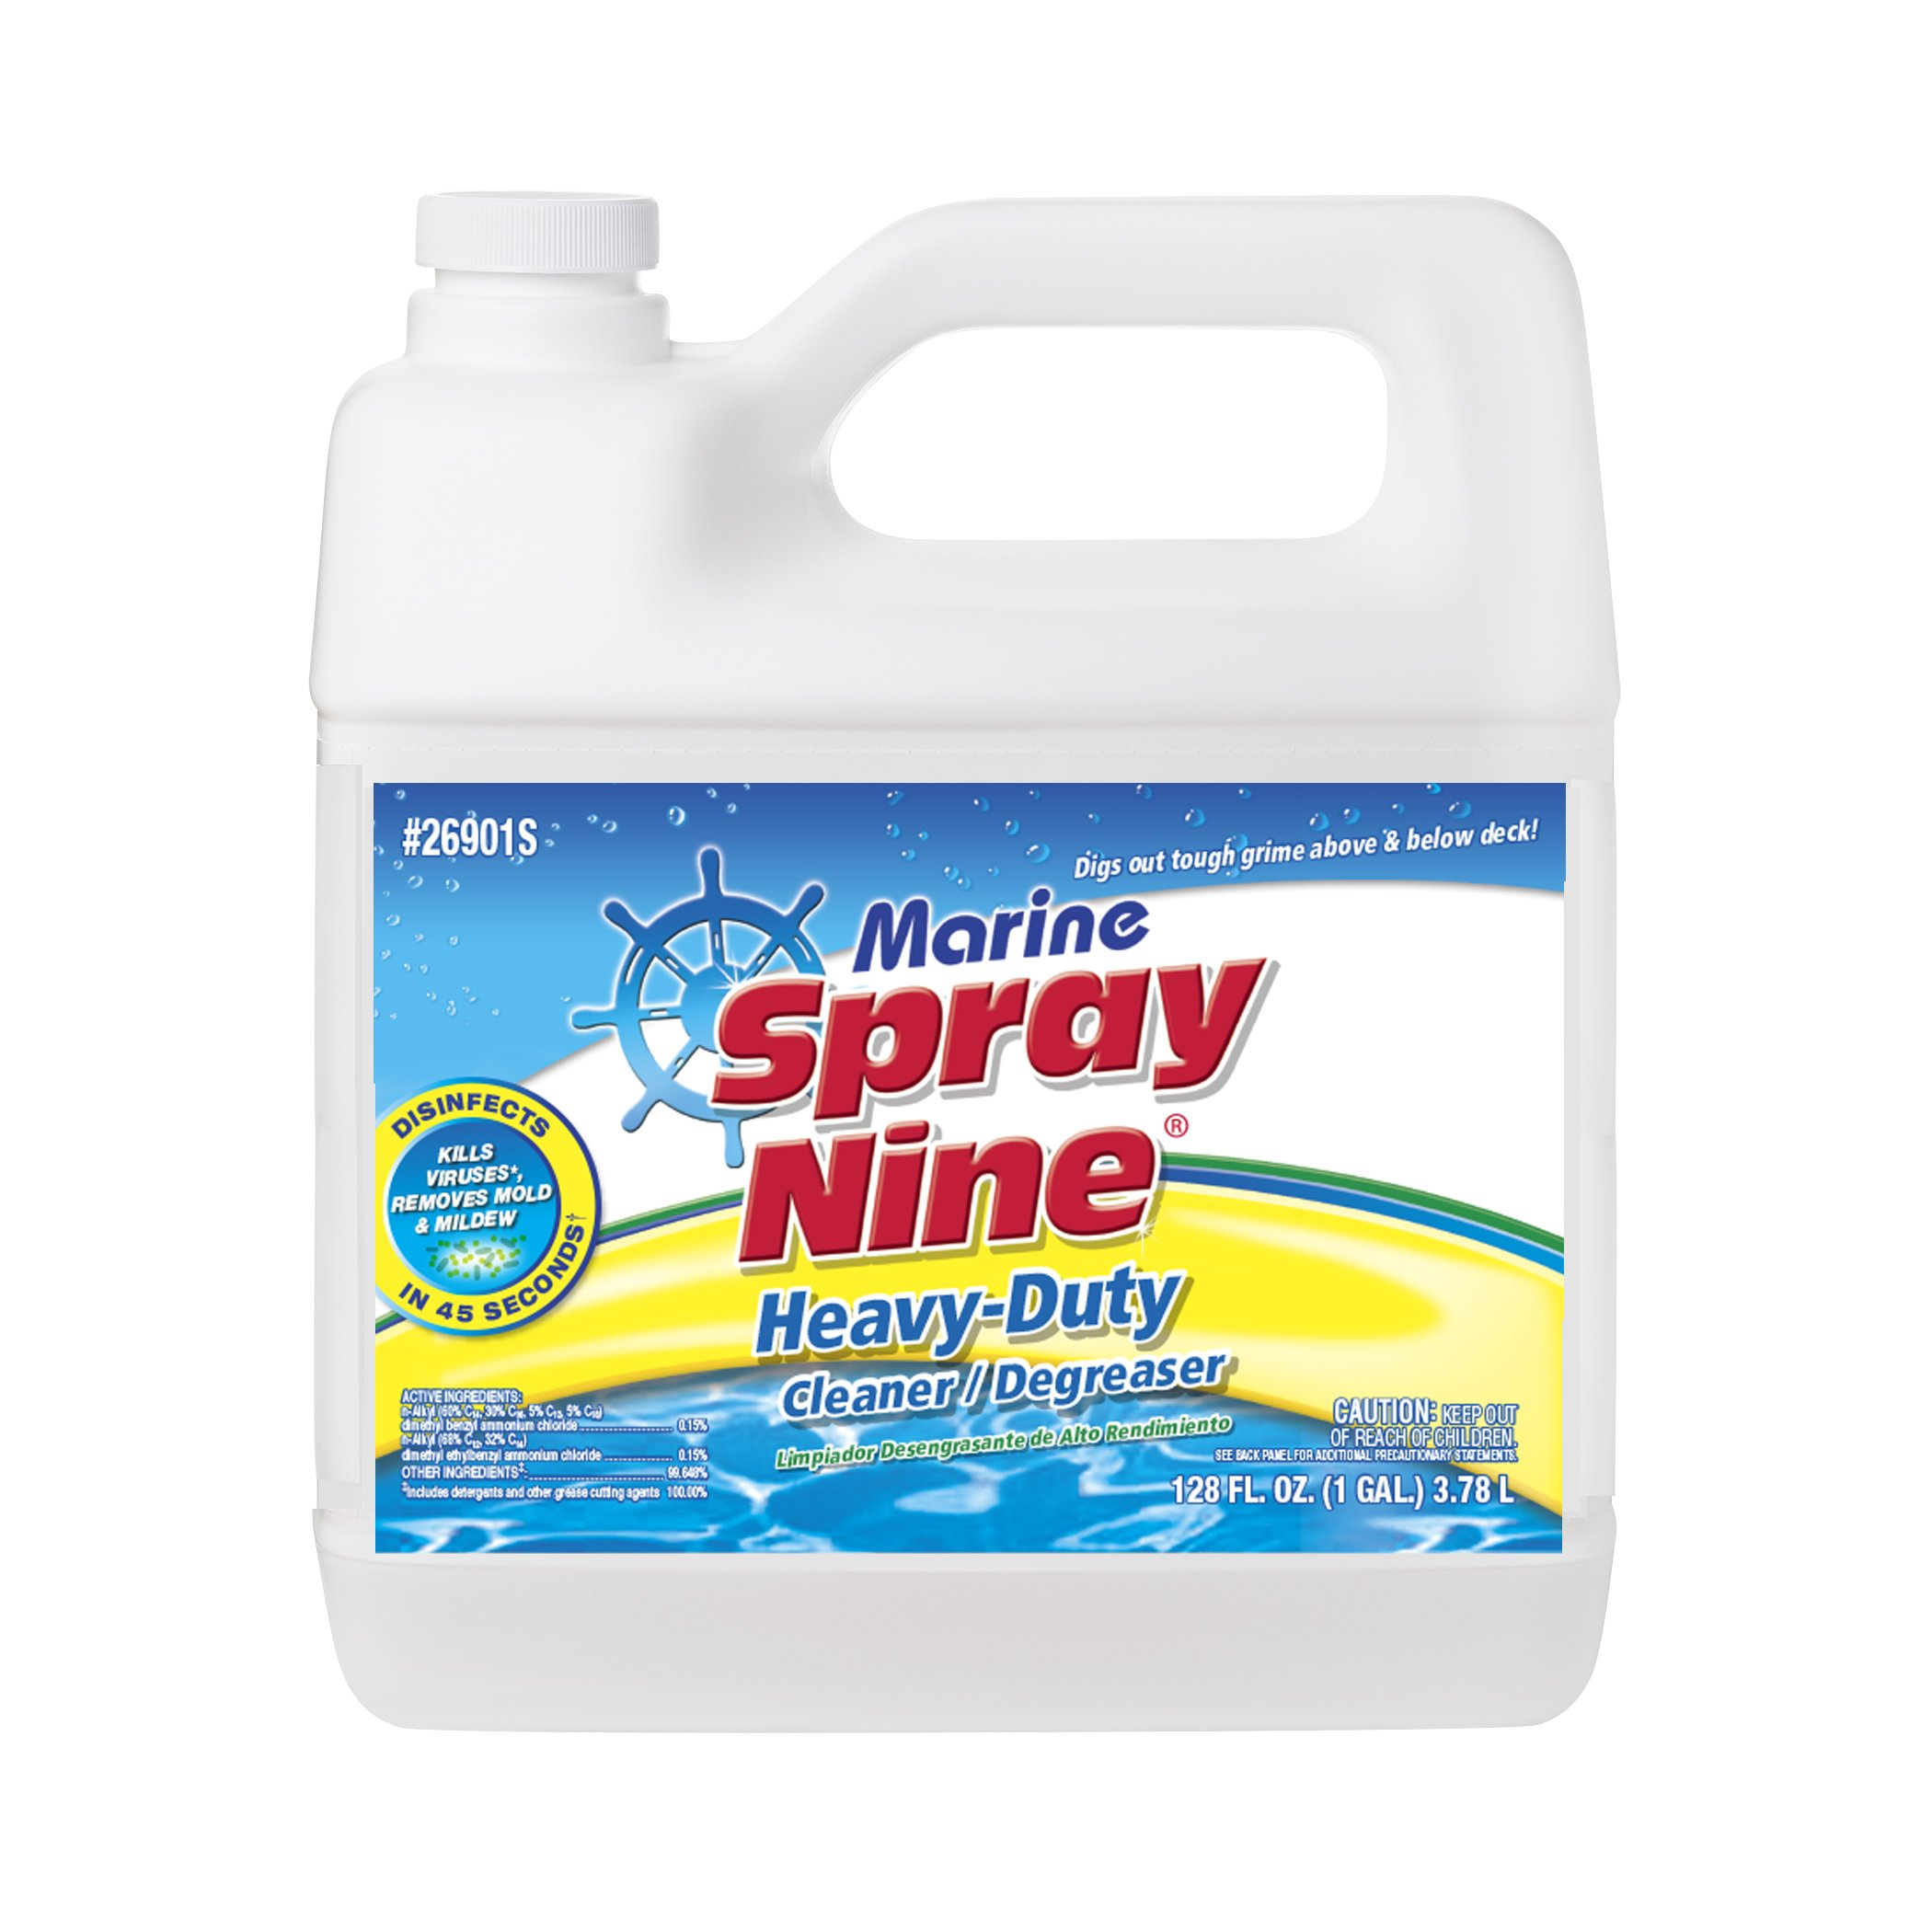 Spray Nine 26901S Marine Cleaner - 1 Gallon